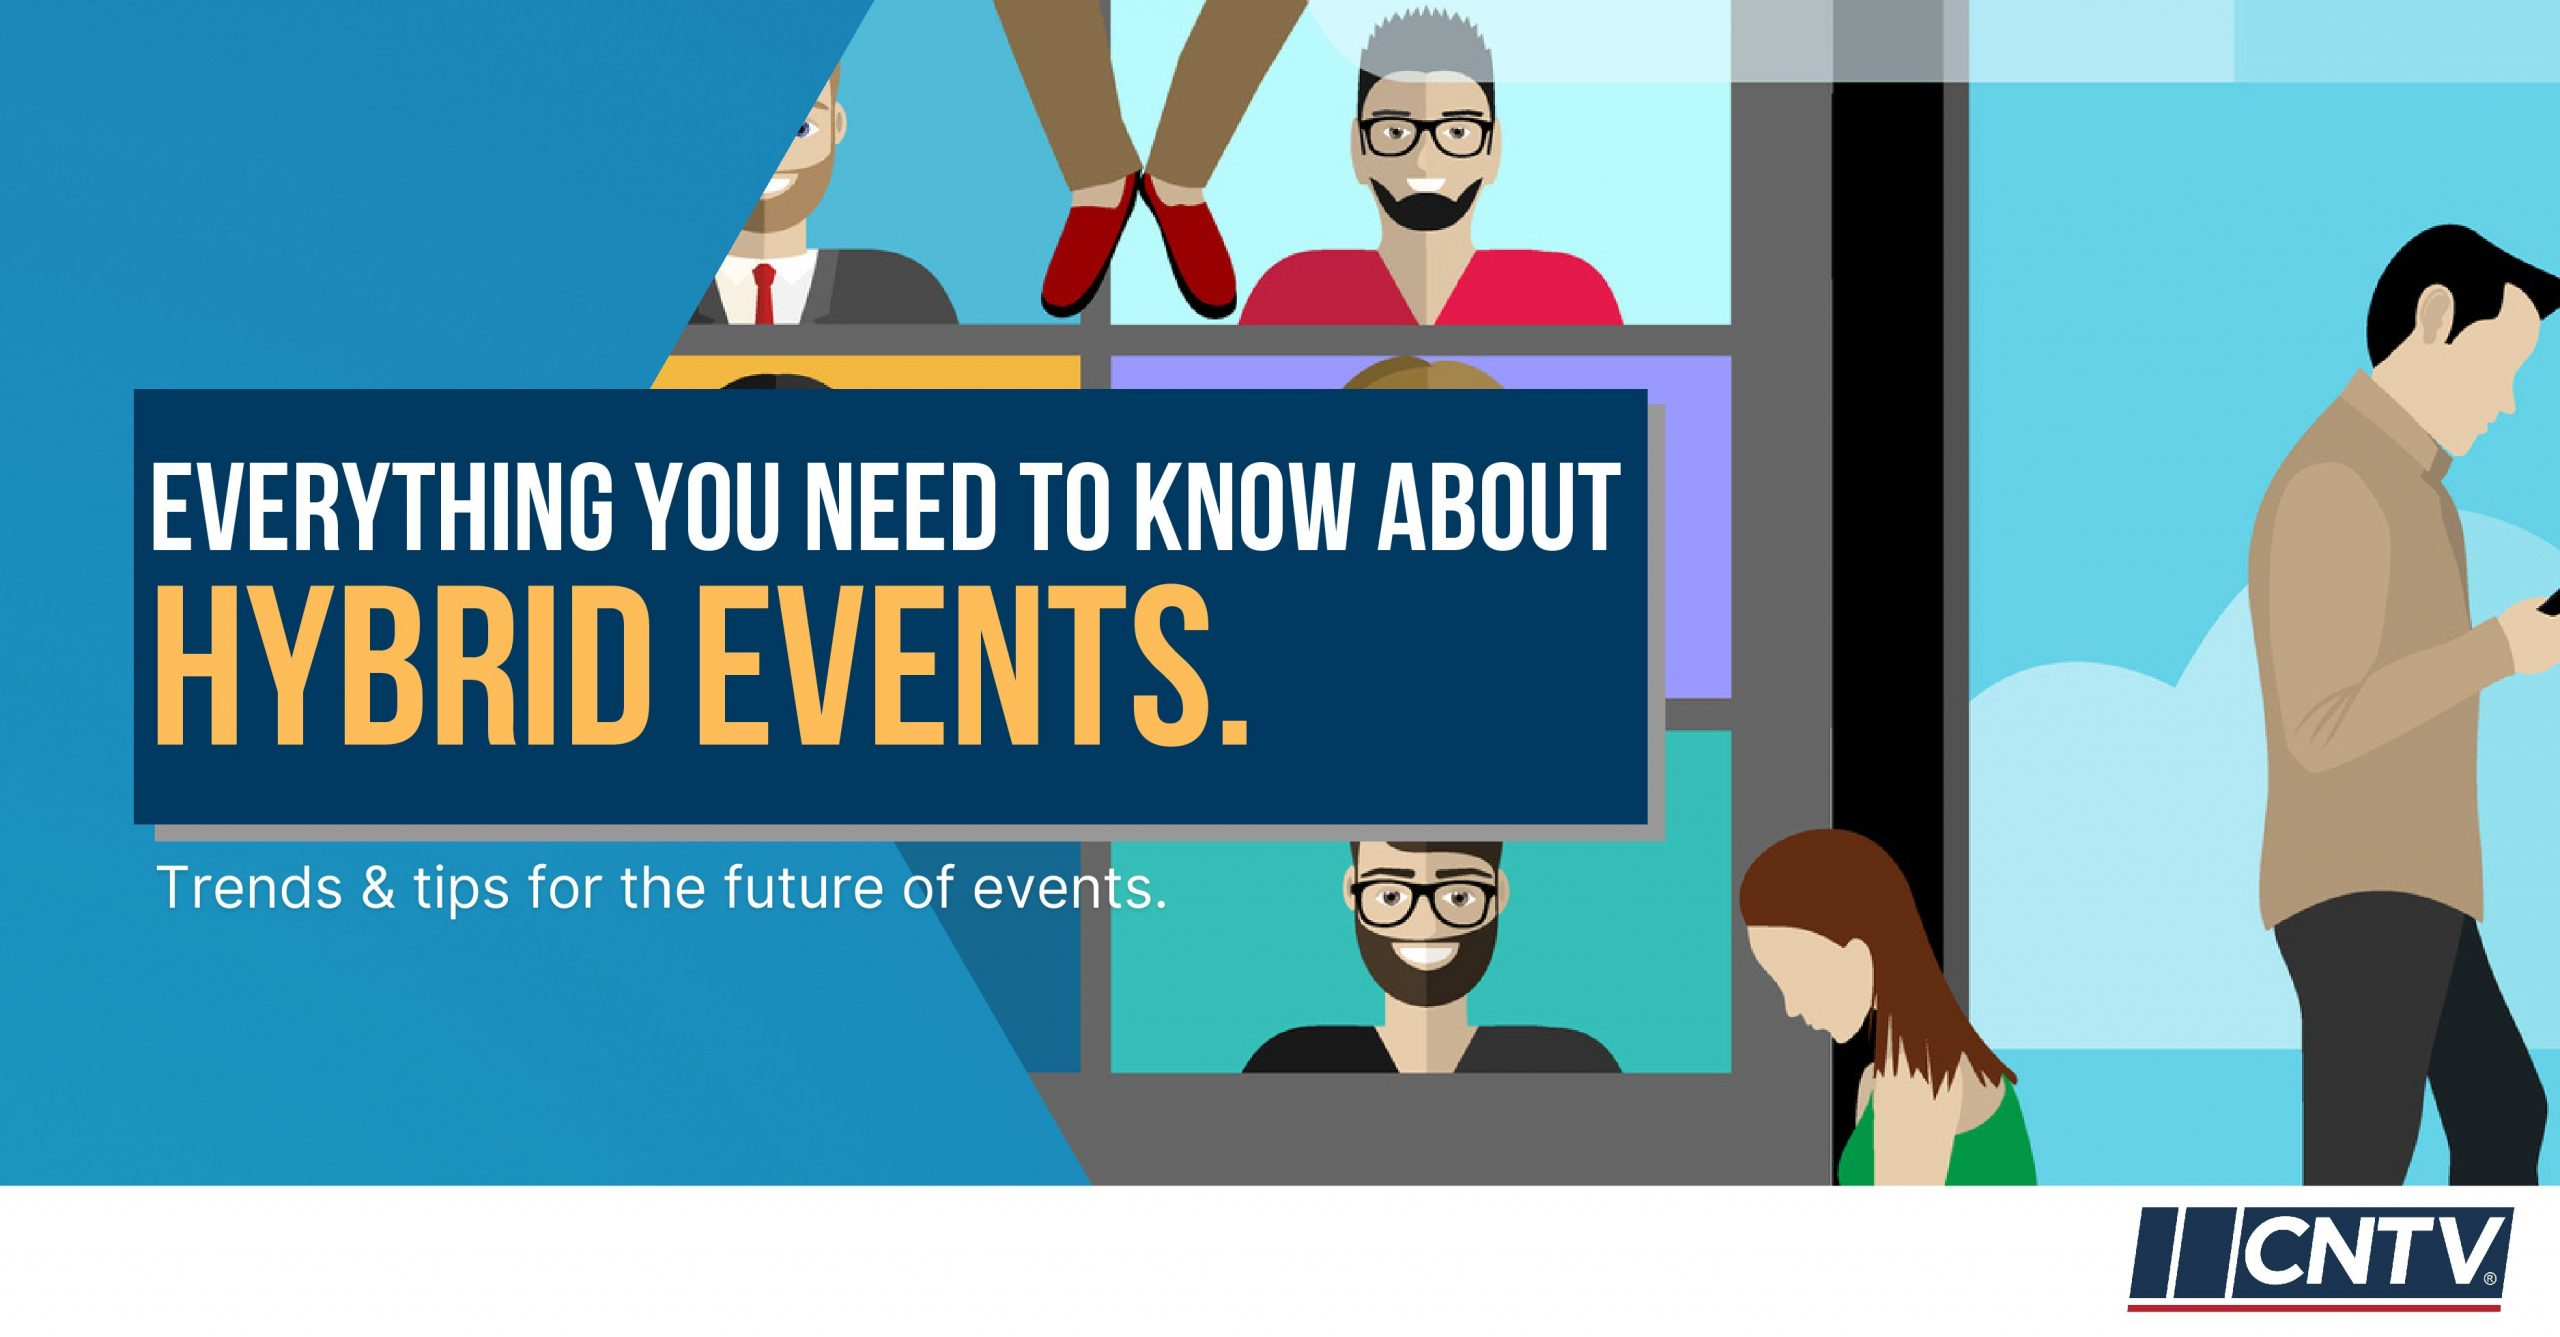 Everything you need to know about hybrid events